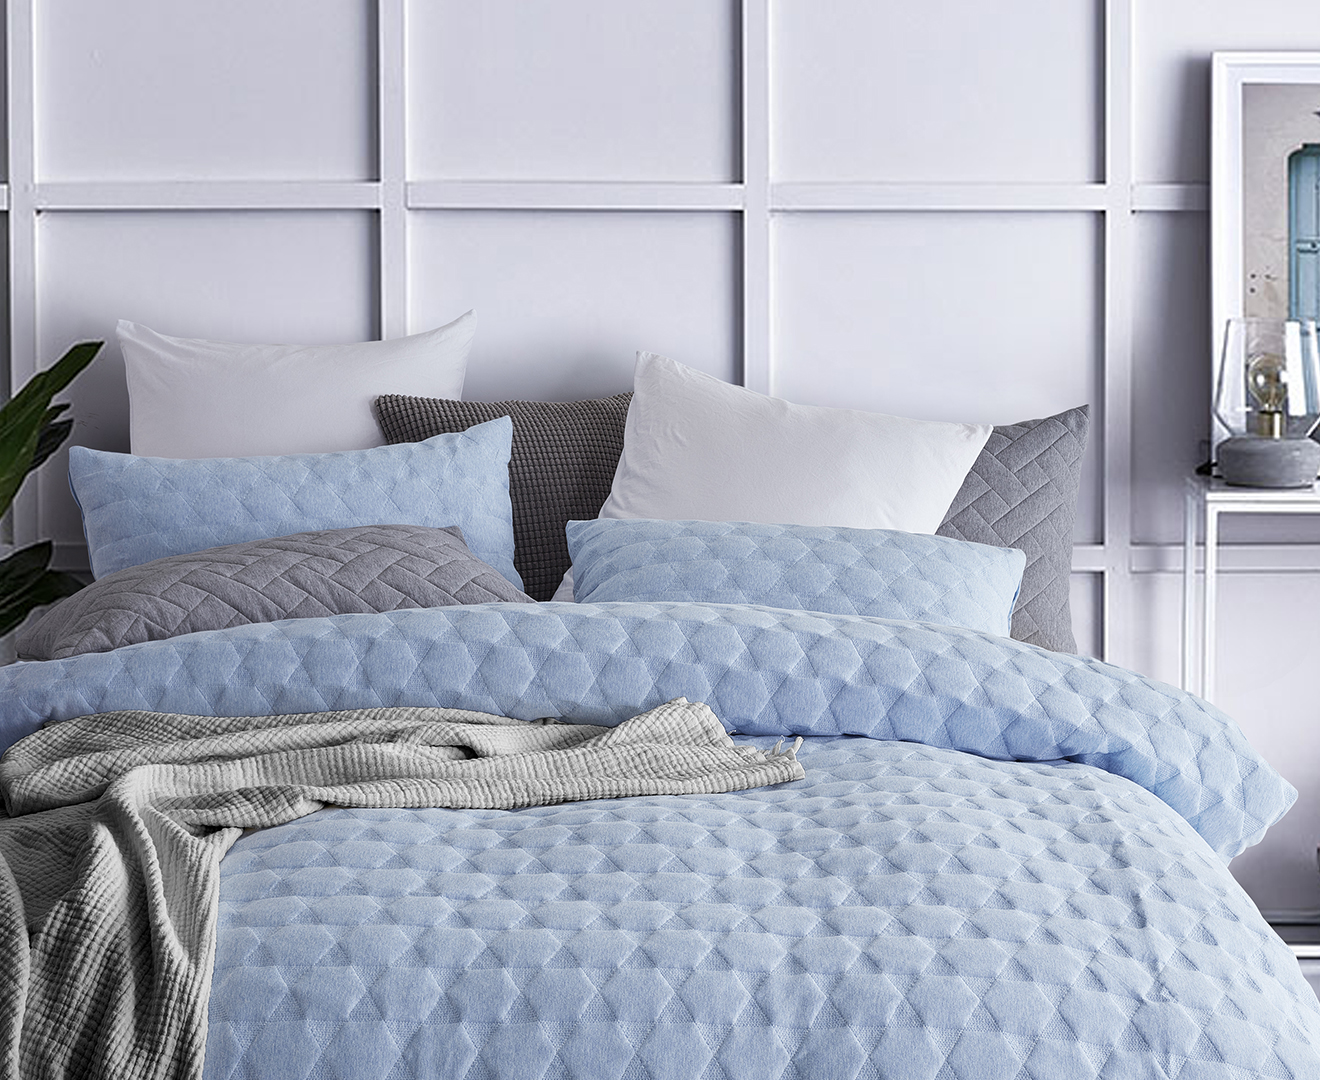 Gioia Casa Quilted Jersey Cotton Queen Bed Quilt Cover Set - Blue Marble